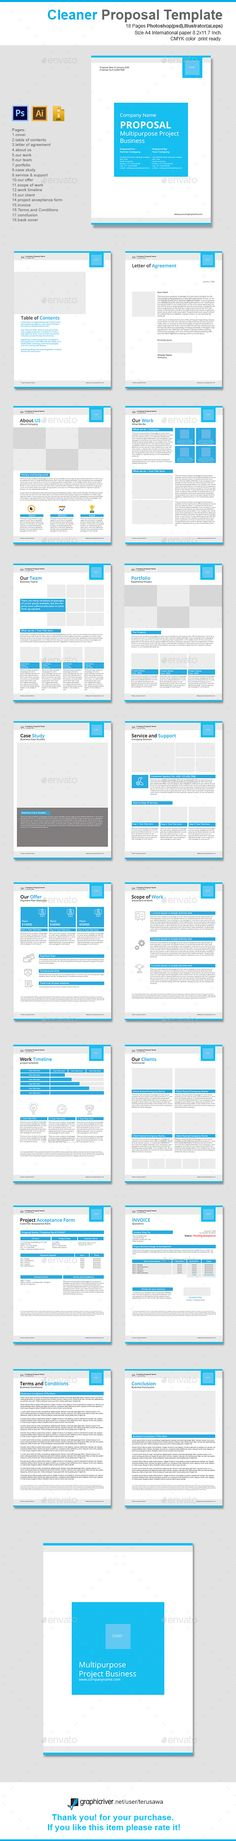 Corporate Proposal + Contract + Invoice | Proposal Templates